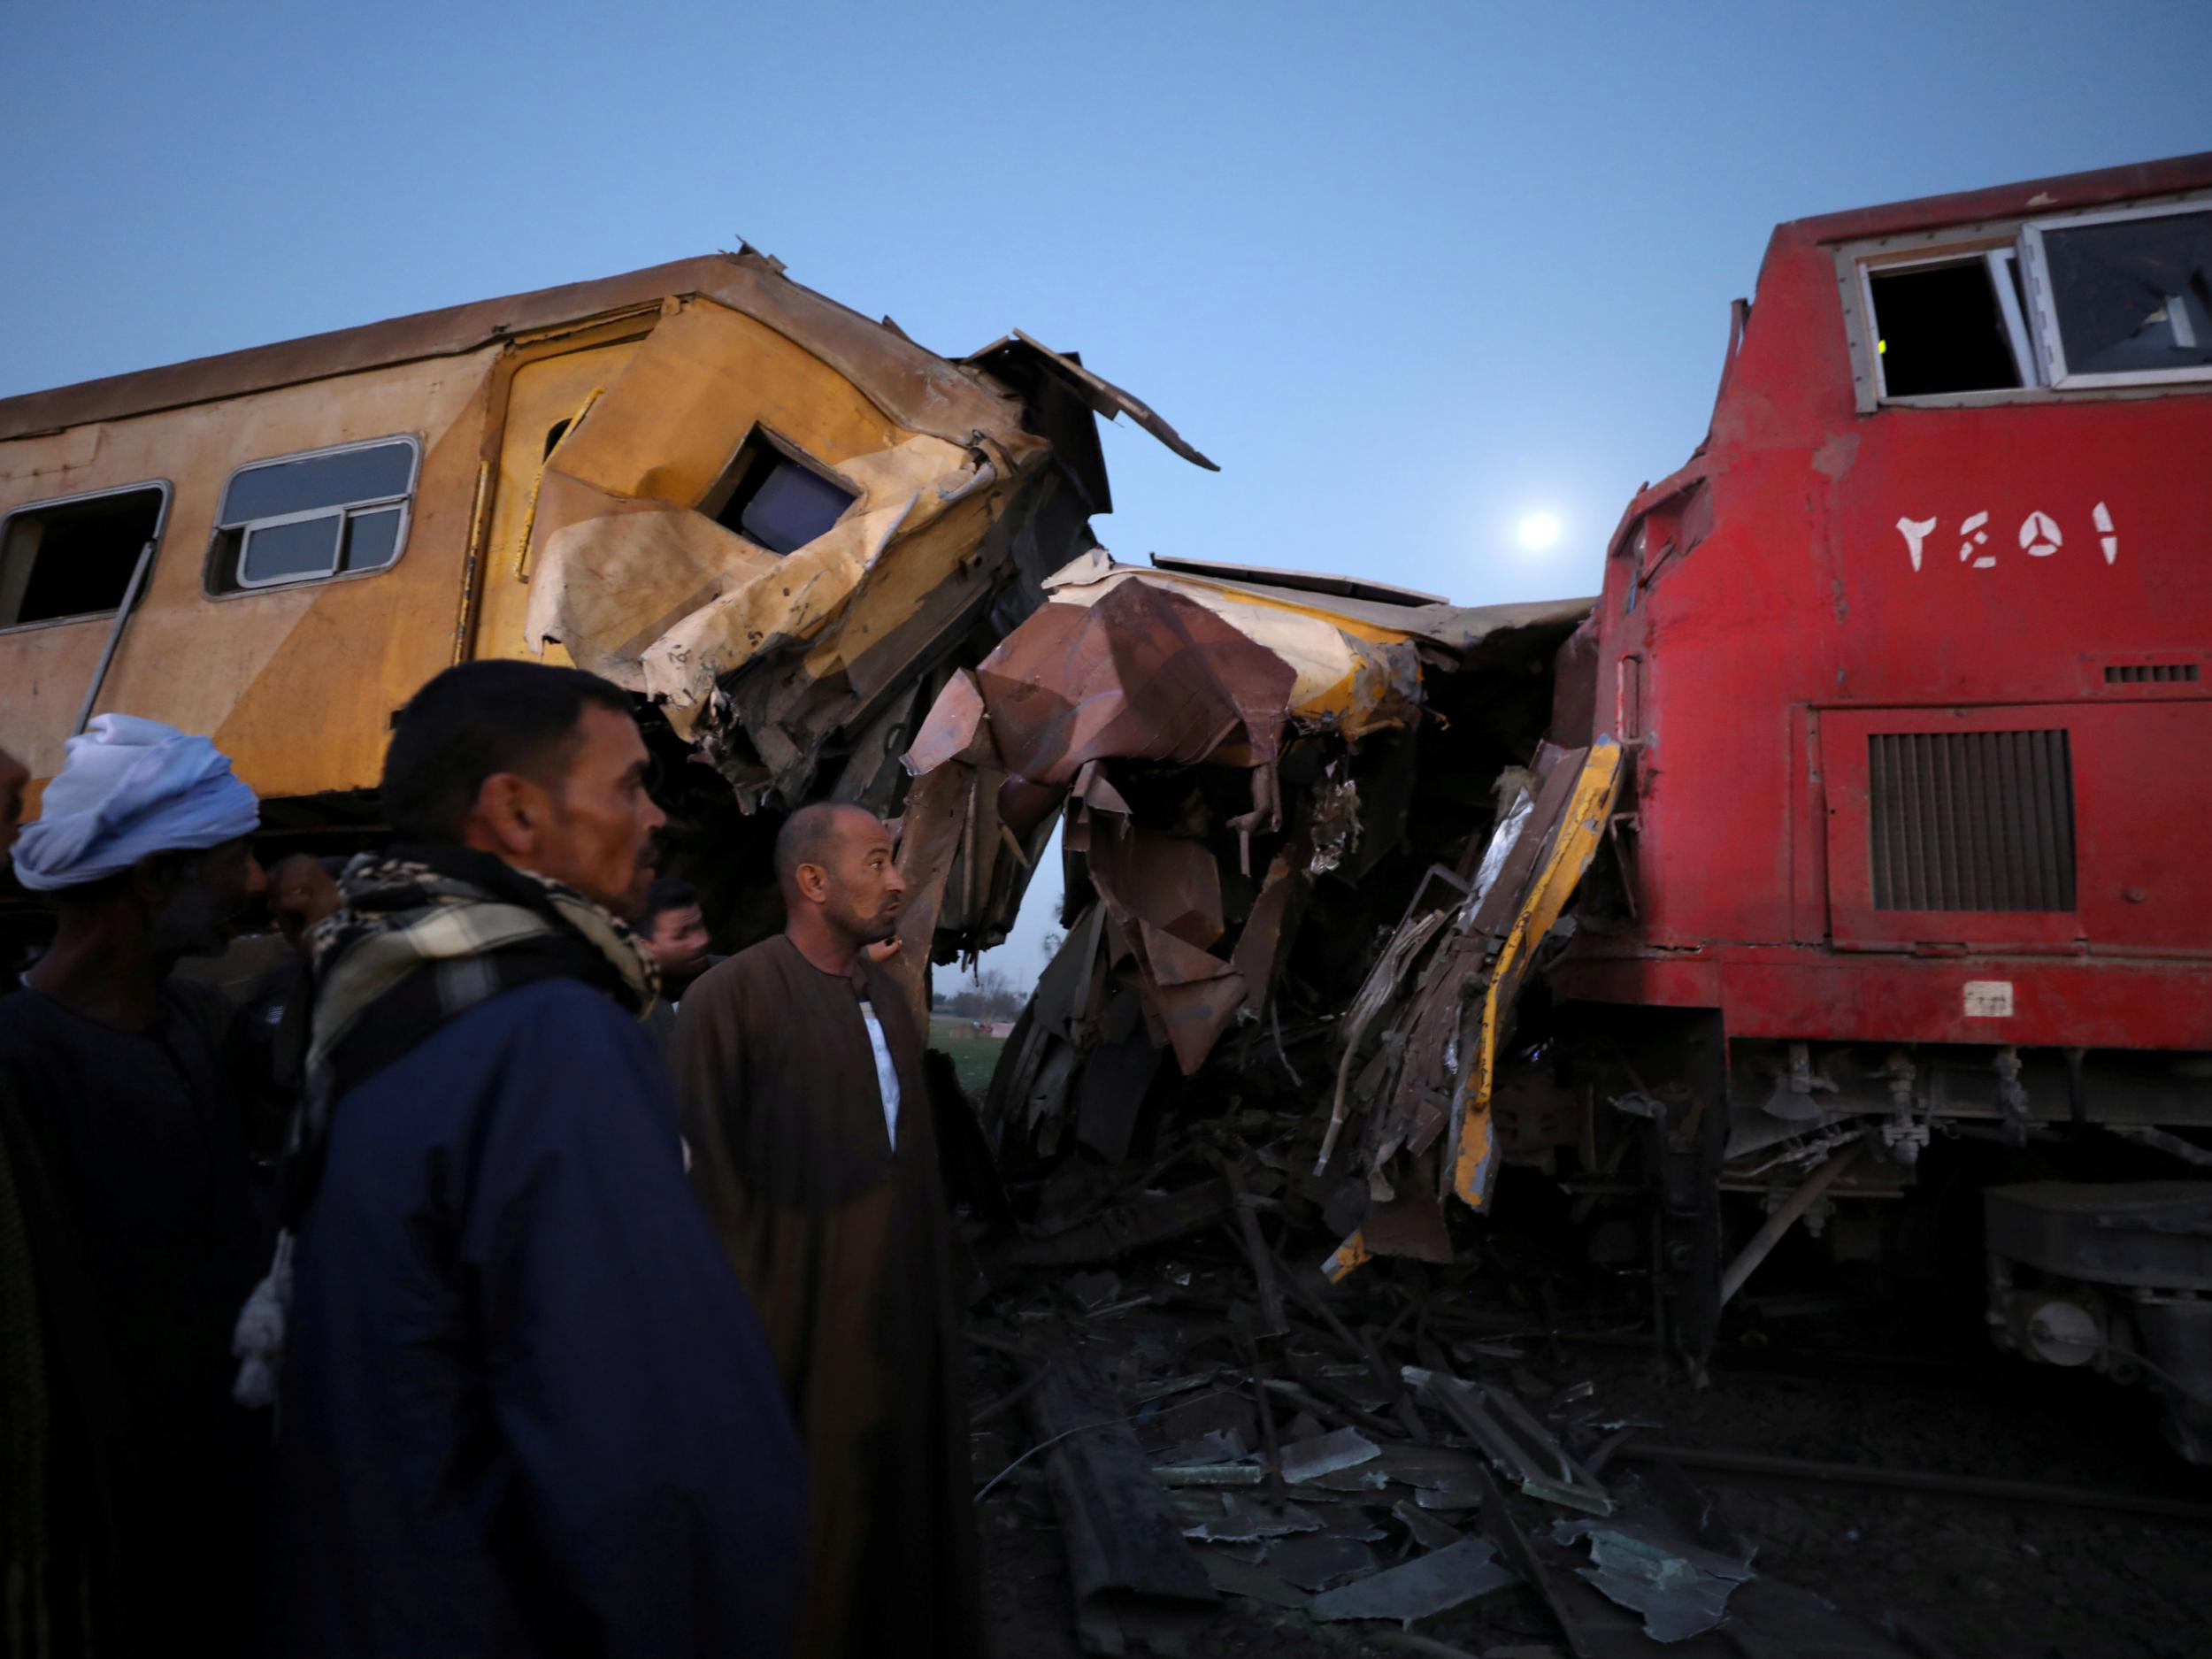 Egypt train crash: At least 15 killed and 40 injured after head on collision north of Cairo